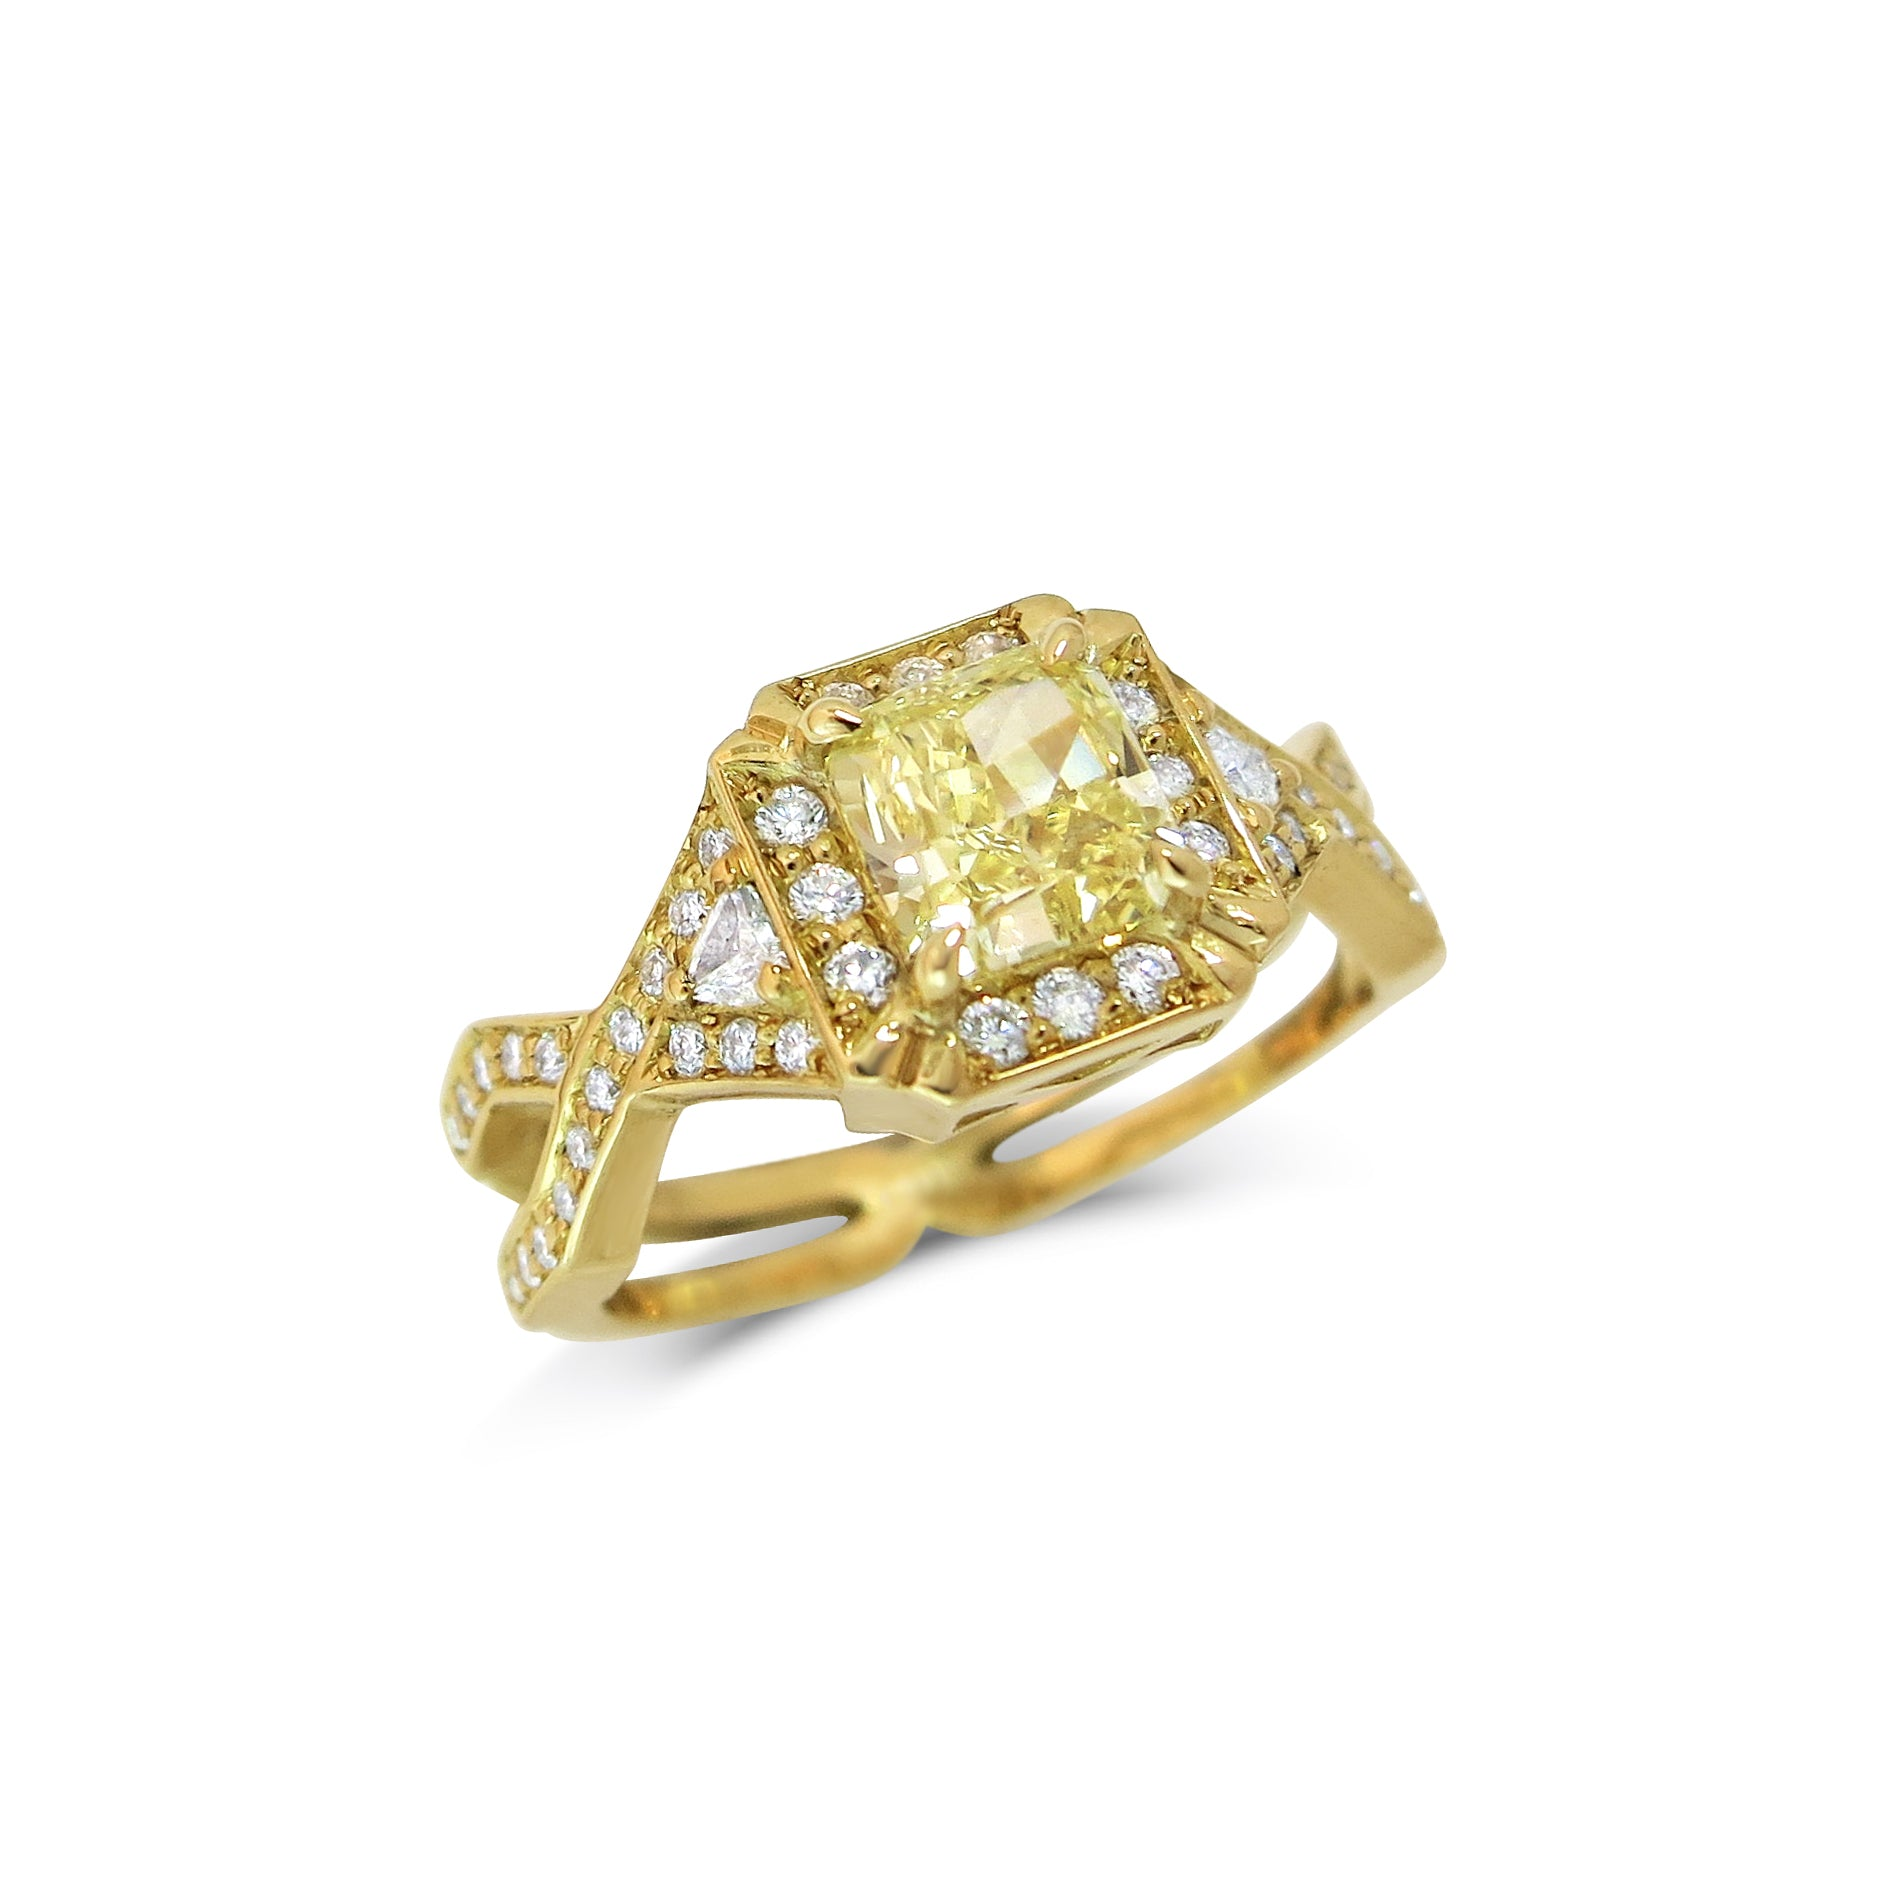 Yellow Asscher Cut Diamond Engagement Ring, set with two trillion white Diamonds and white Diamond pave